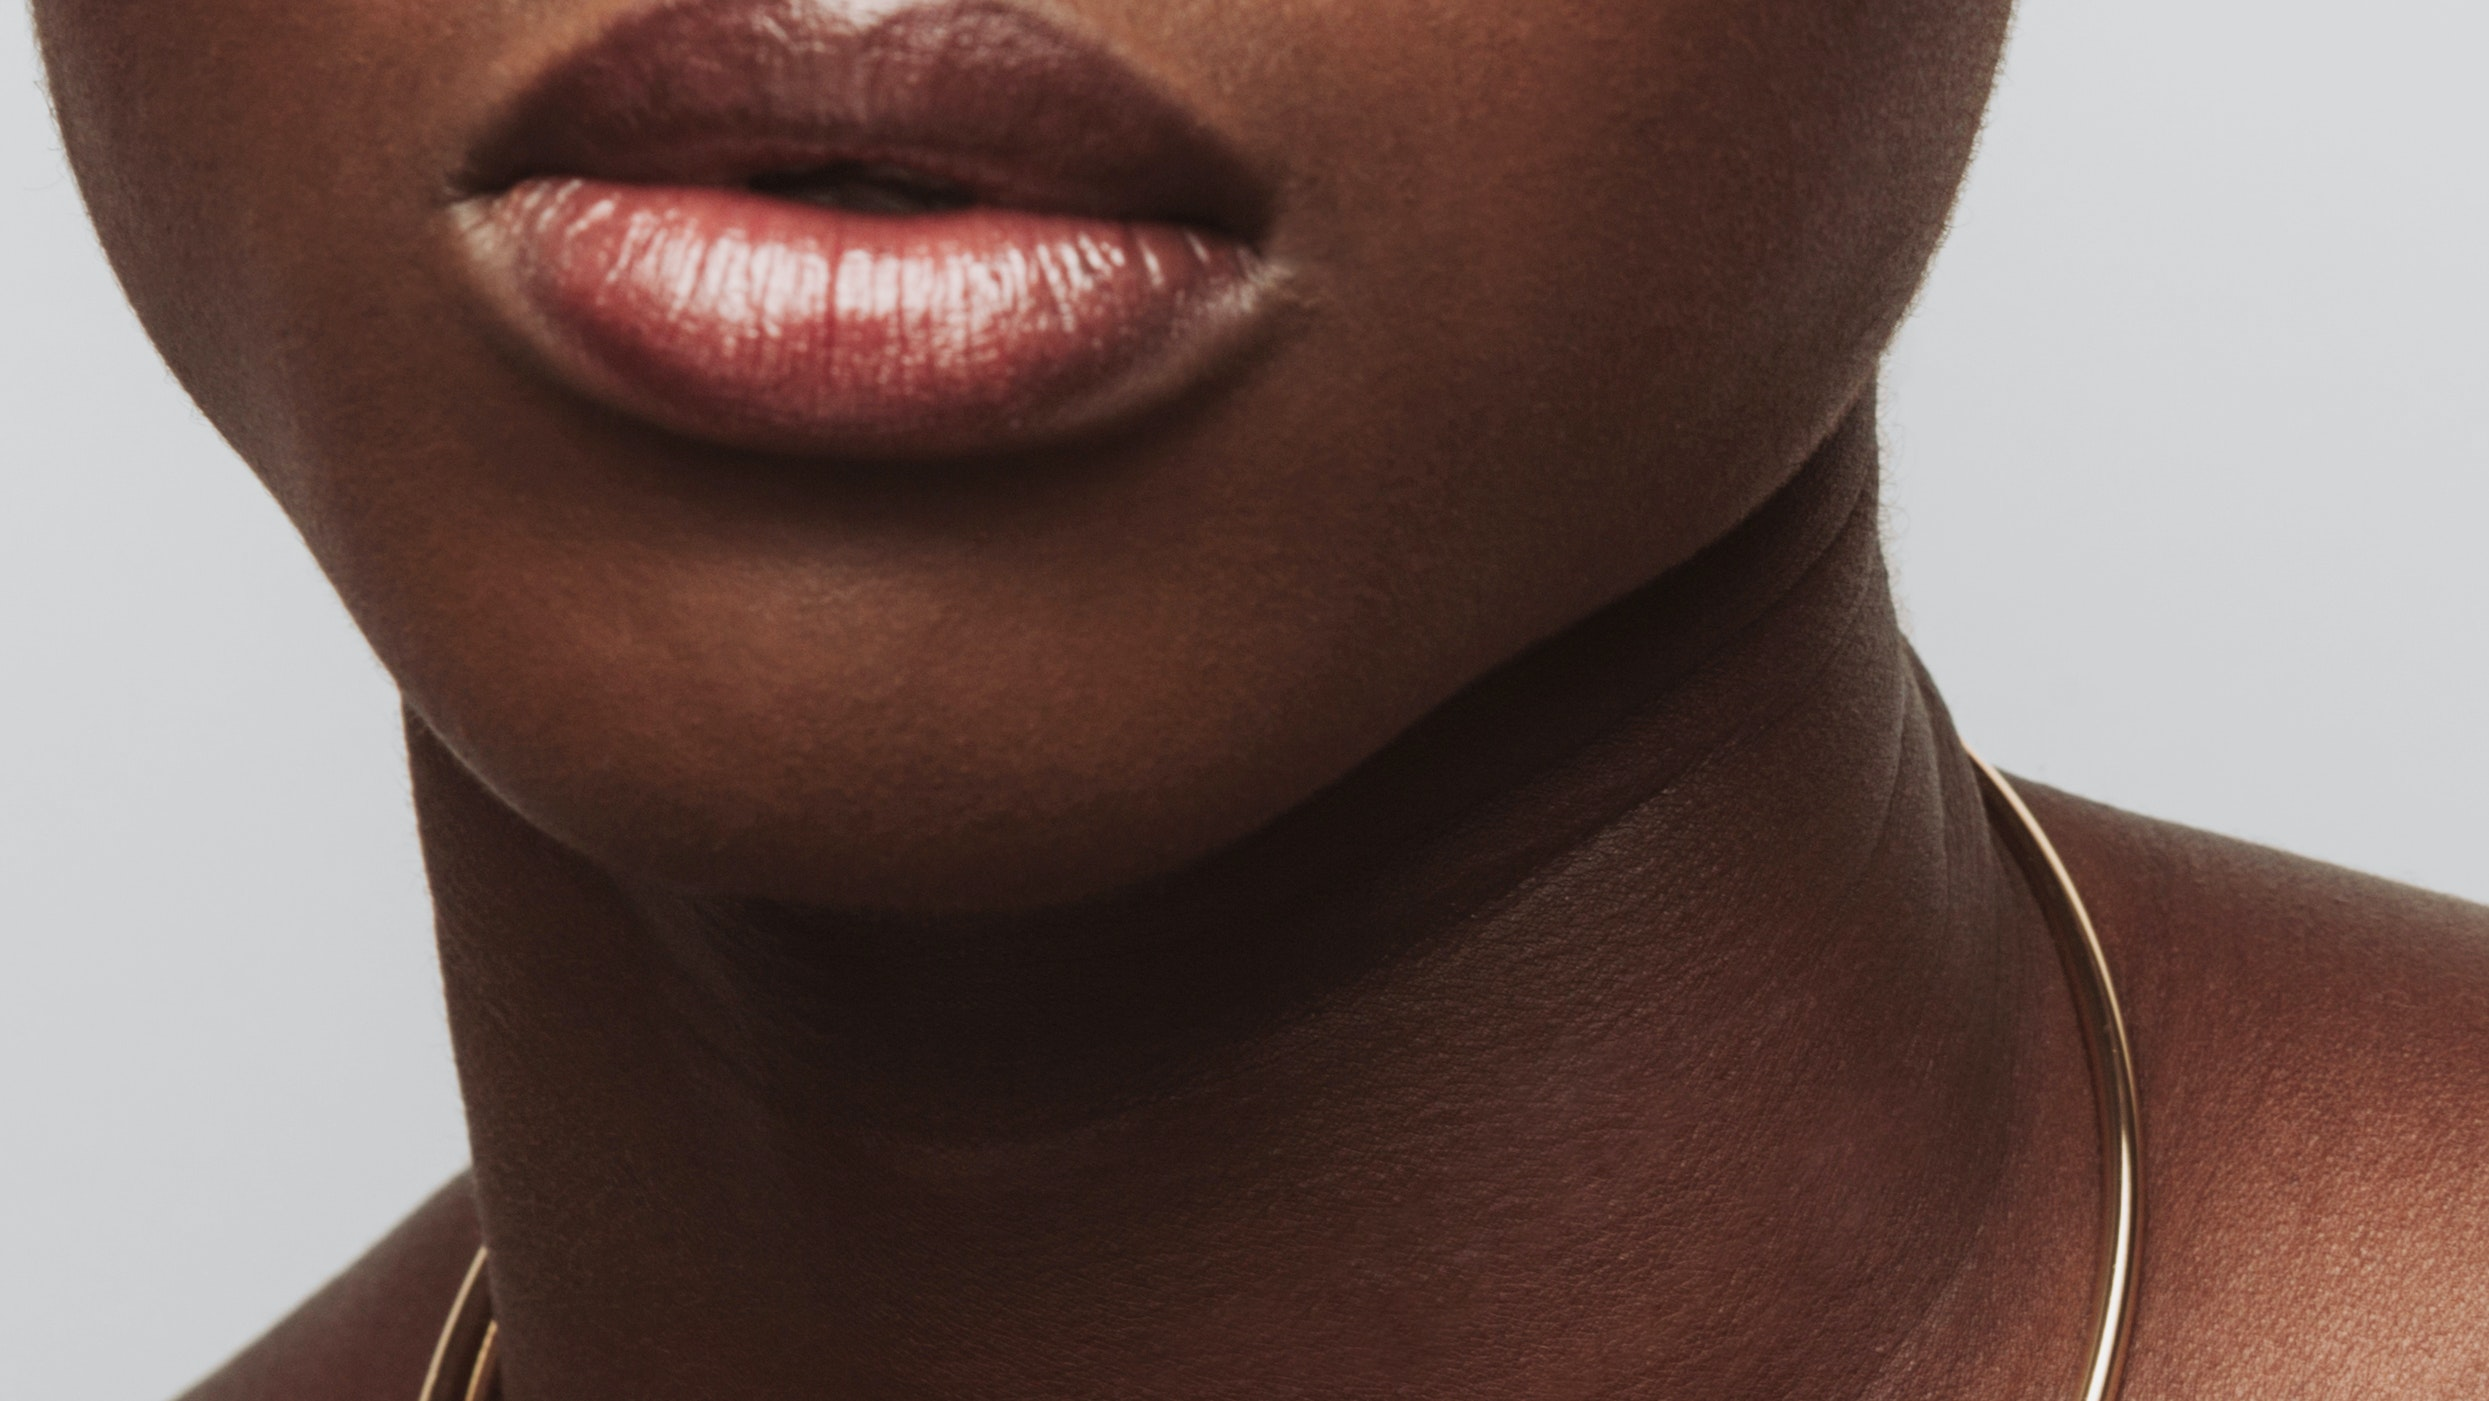 You Can Now Microneedle Your Lips at Home — But is it Safe?